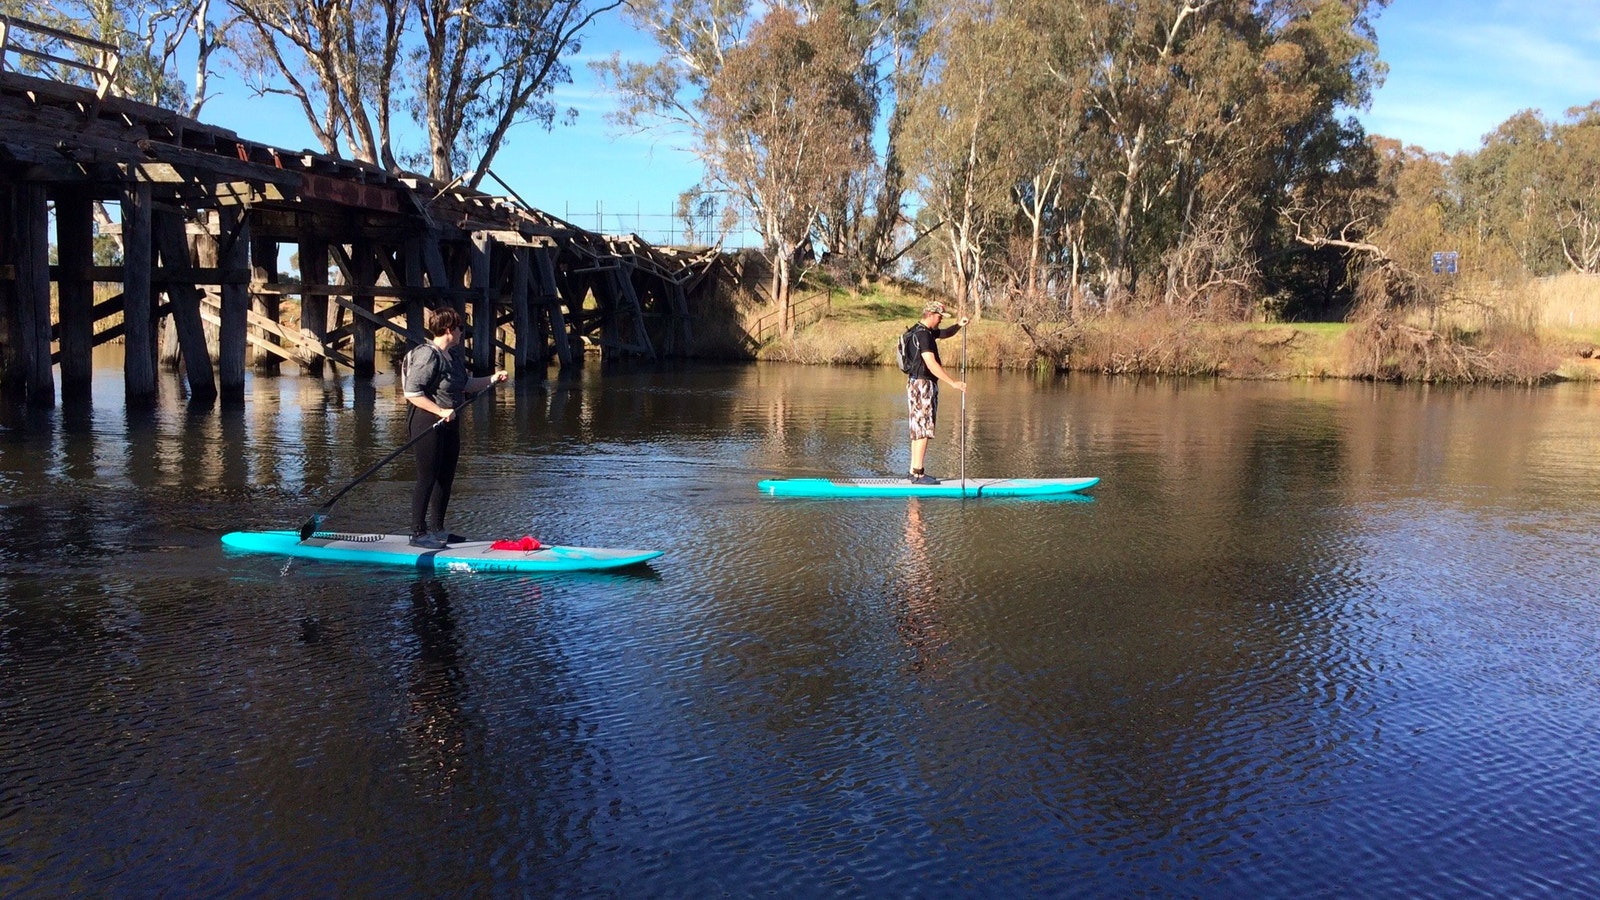 A couple paddling on a tour on the Goulburn River in Nagambie, under an old timber bridge.